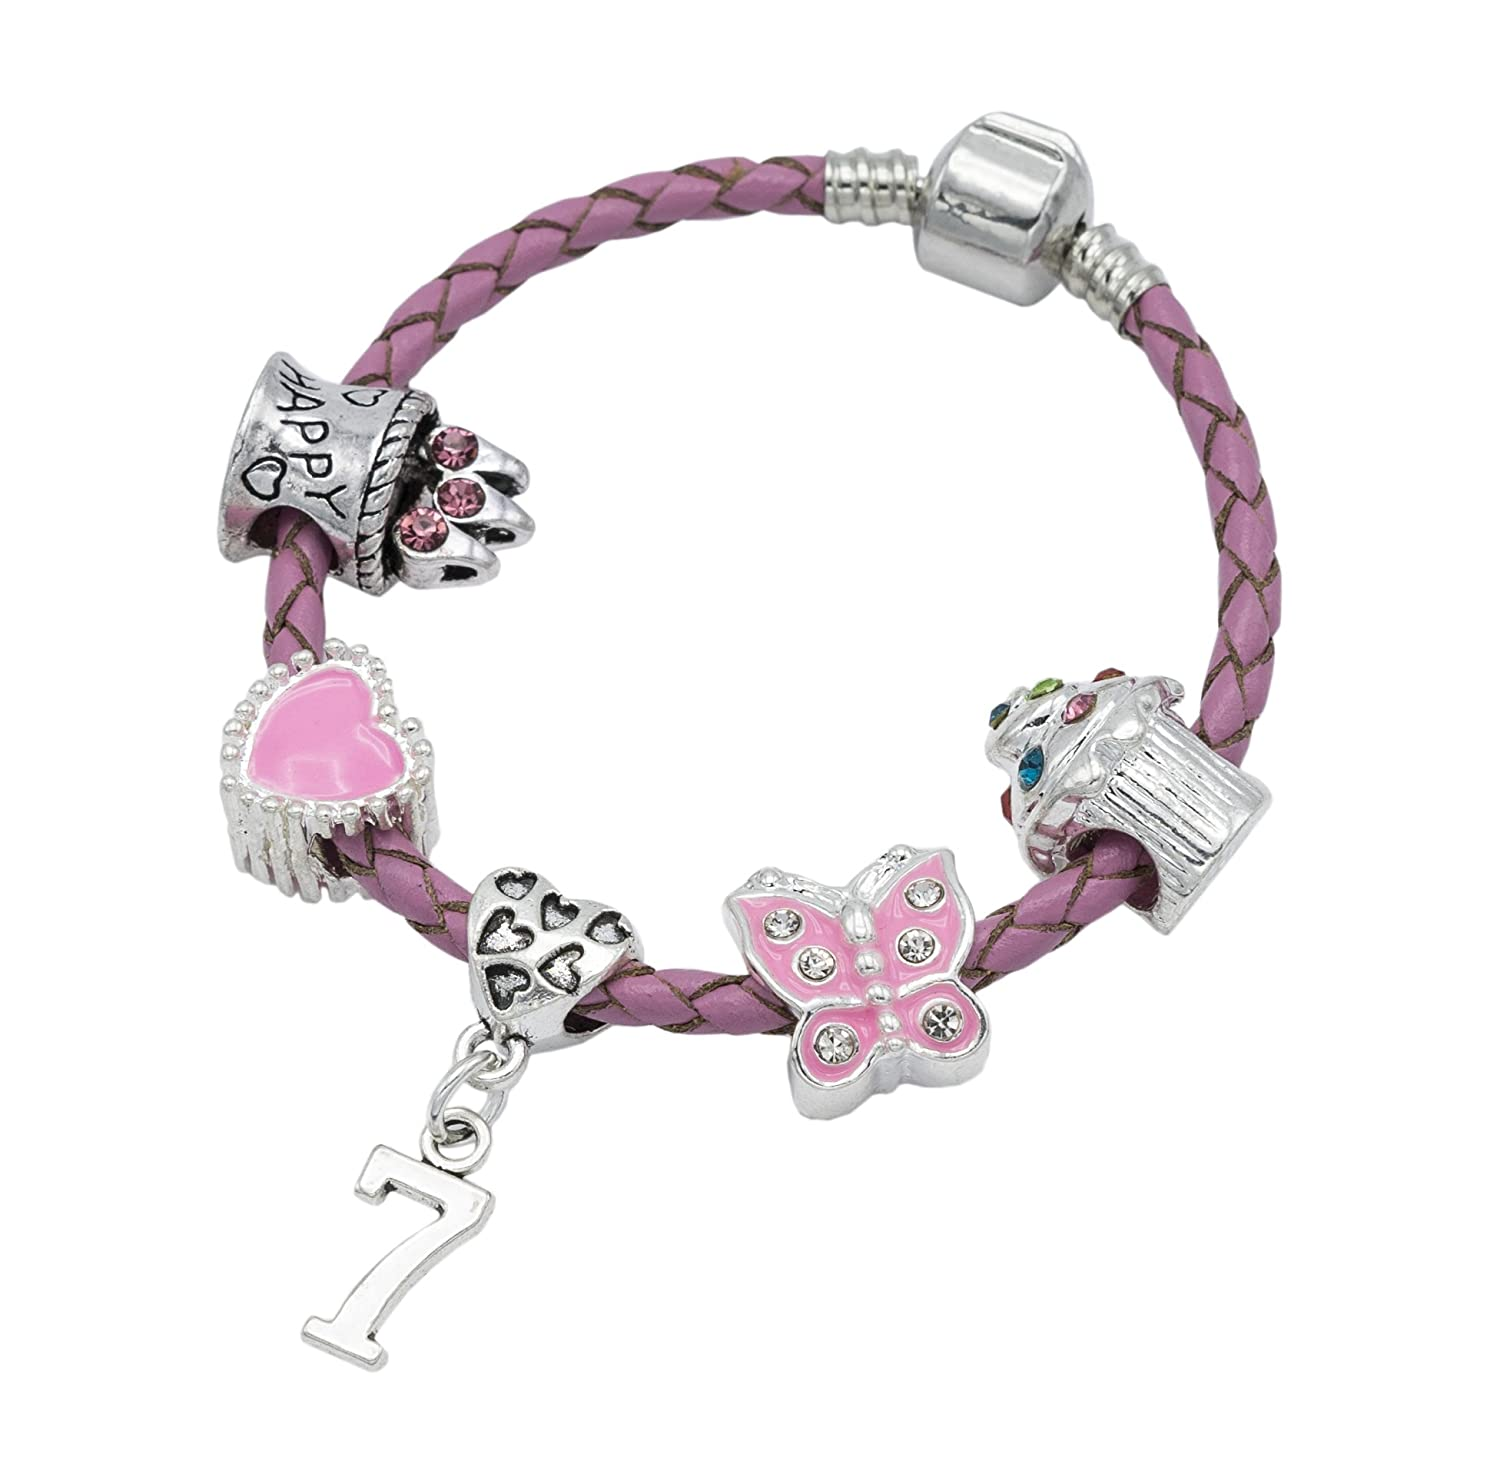 Bracelet fille à breloques en cuir rose « Happy 7th Birthday » - Pochette cadeau Jewellery Hut BRKID7